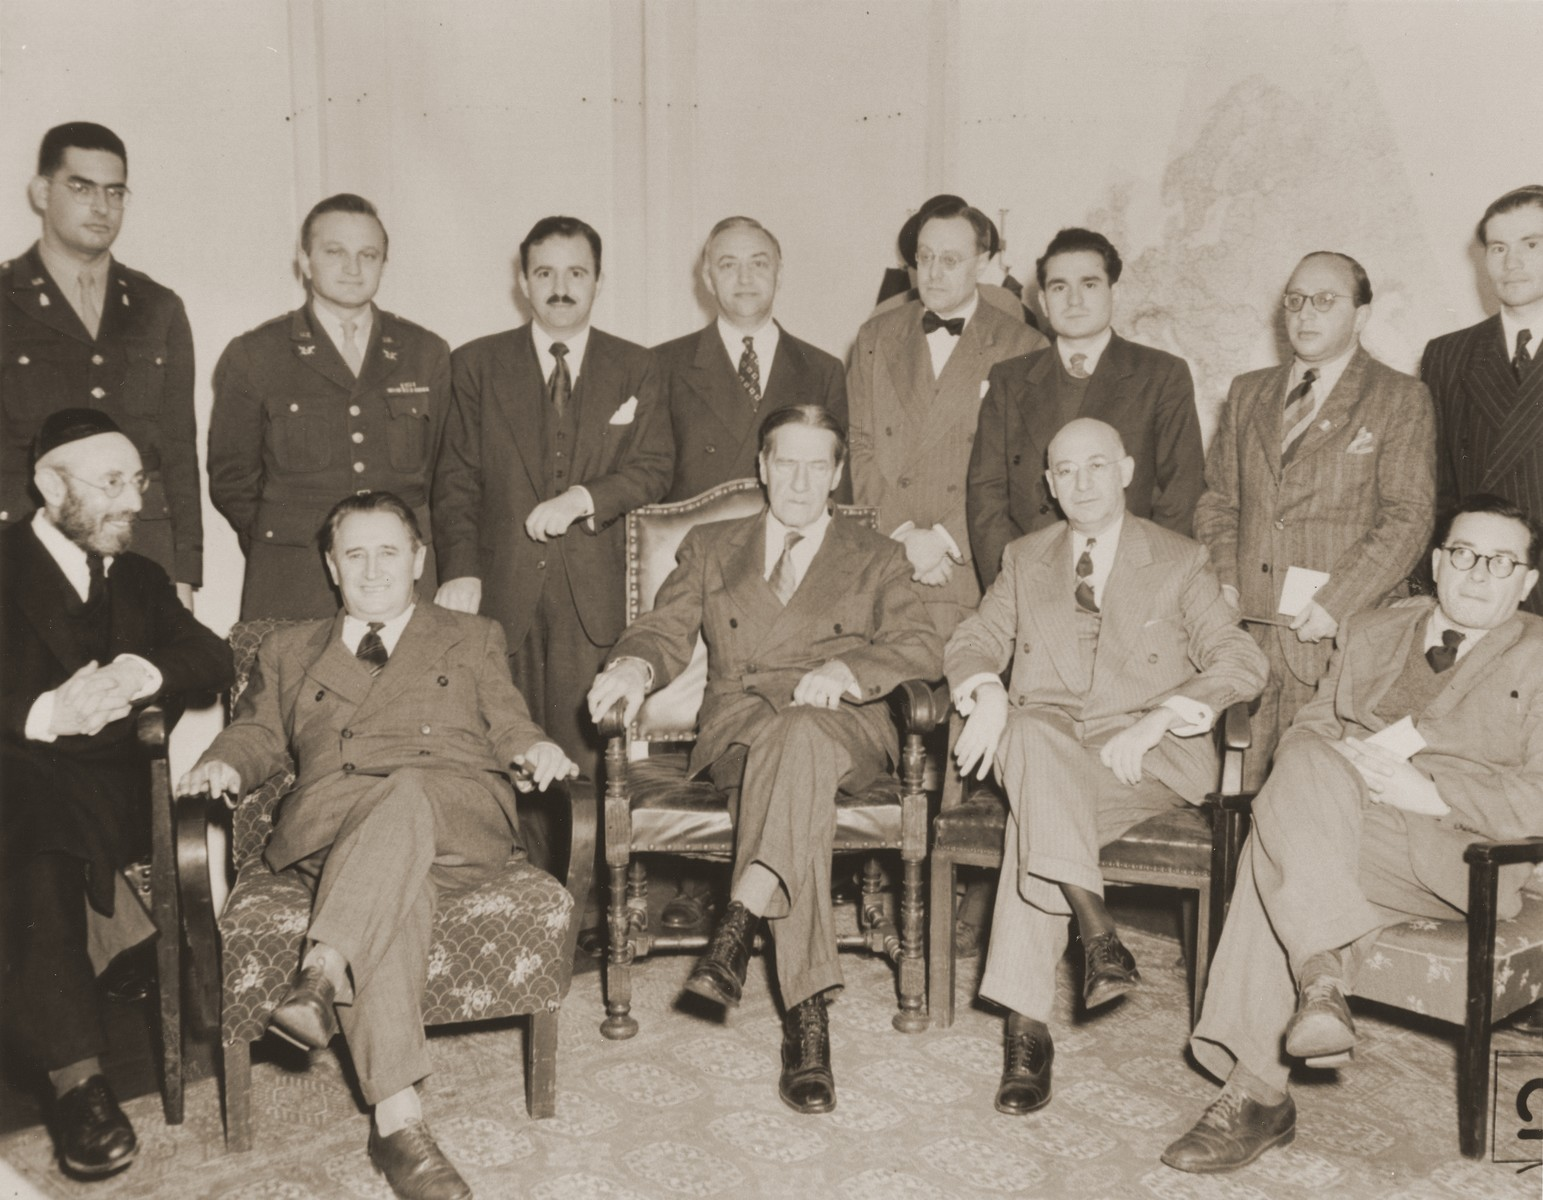 Group portrait of participants at a meeting between Jewish DP leaders and visiting American Jewish leaders in the American Zone of Germany.  Pictured in the back row, from left to right, are: Rabbi Herbert Friedman; Abraham Hyman; Isaiah Kennen; Philip Bernstein; Philip Forman; Leon Retter (Aryeh Nesher); Boris Pliskin; Rabbi Gerhard Rose. In the front row from left to right, are: Rabbi Samuel Snieg; Nahum Goldmann; Rabbi Stephen Wise; Jacob Blaustein; and Samuel Gringauz.